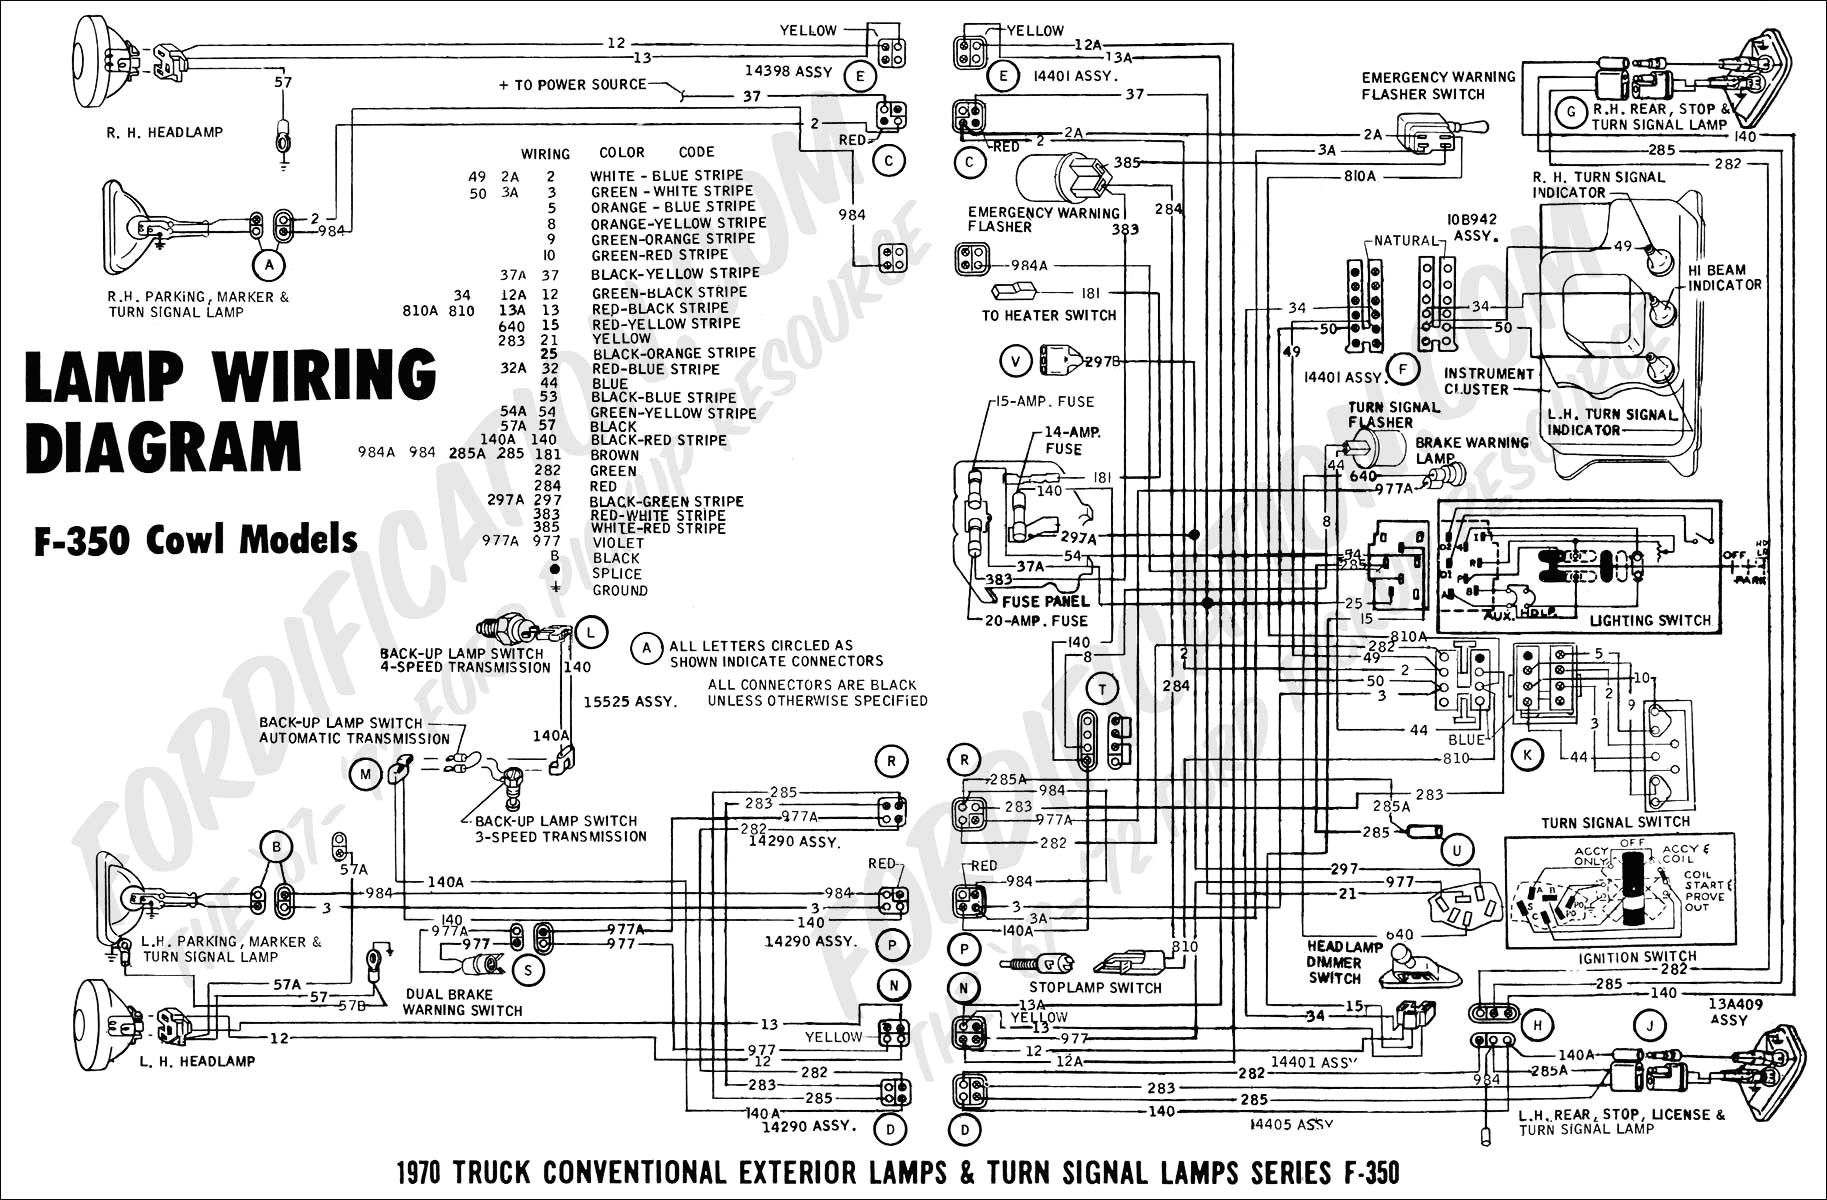 Ford 555 Fuse Box Wiring Library 5900 Diagram 2000 F350 Best Site F 350 Super Duty